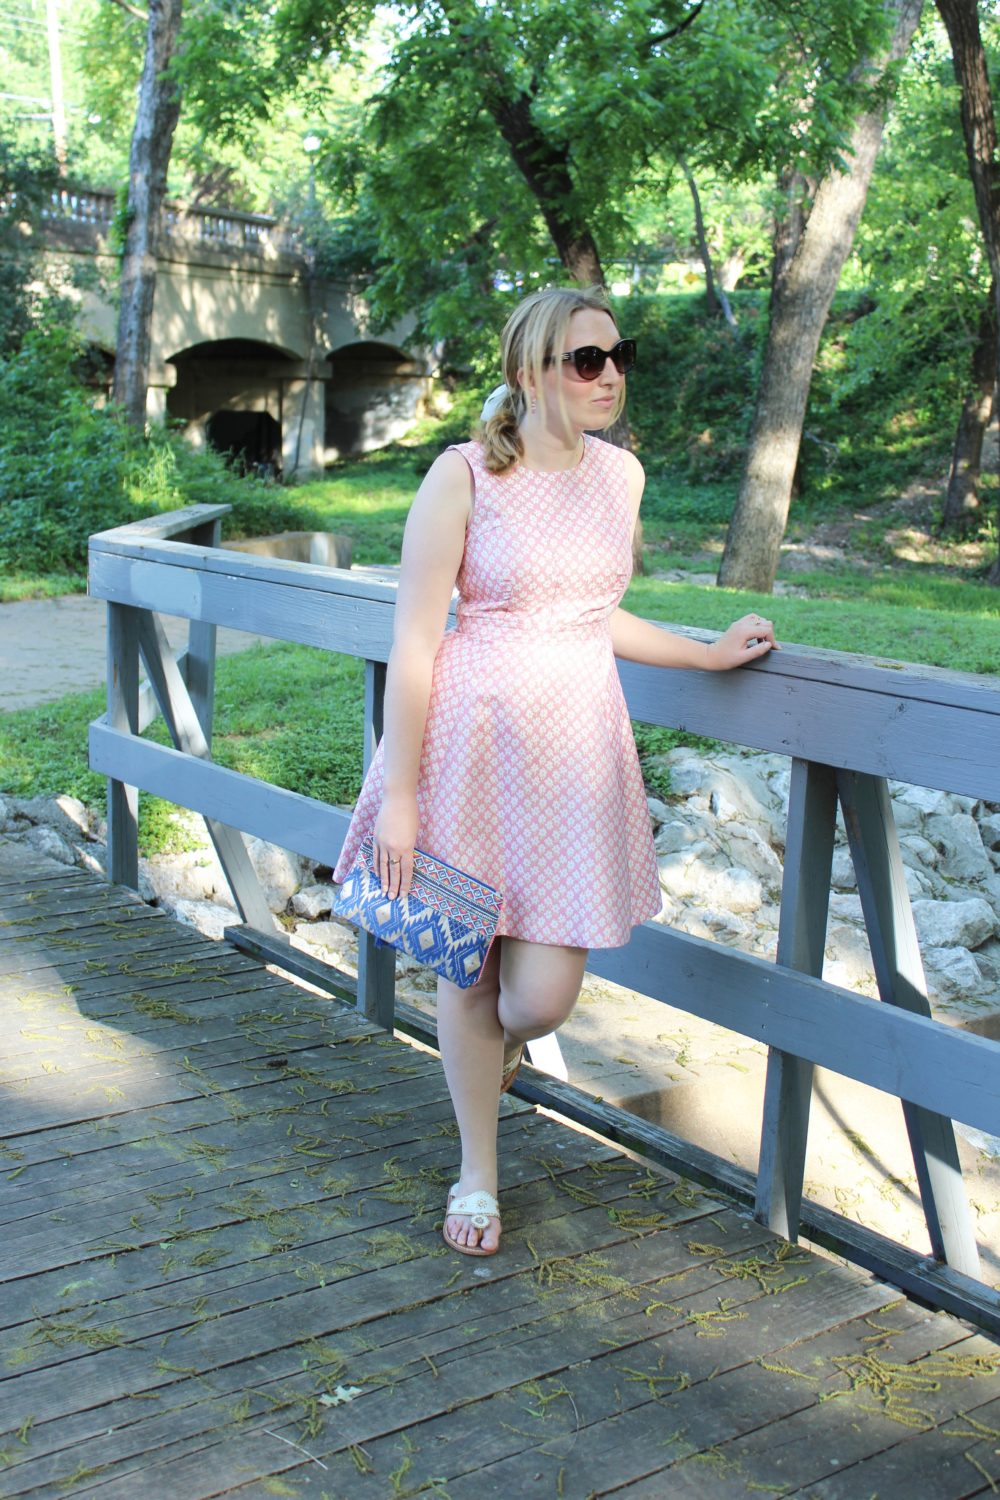 DestinationOasis, Oasis and other brands, Pink Fit and Flare Dress with a Tassel Clutch, Oasis Fashion, Oasisfashion, Destination Oasis